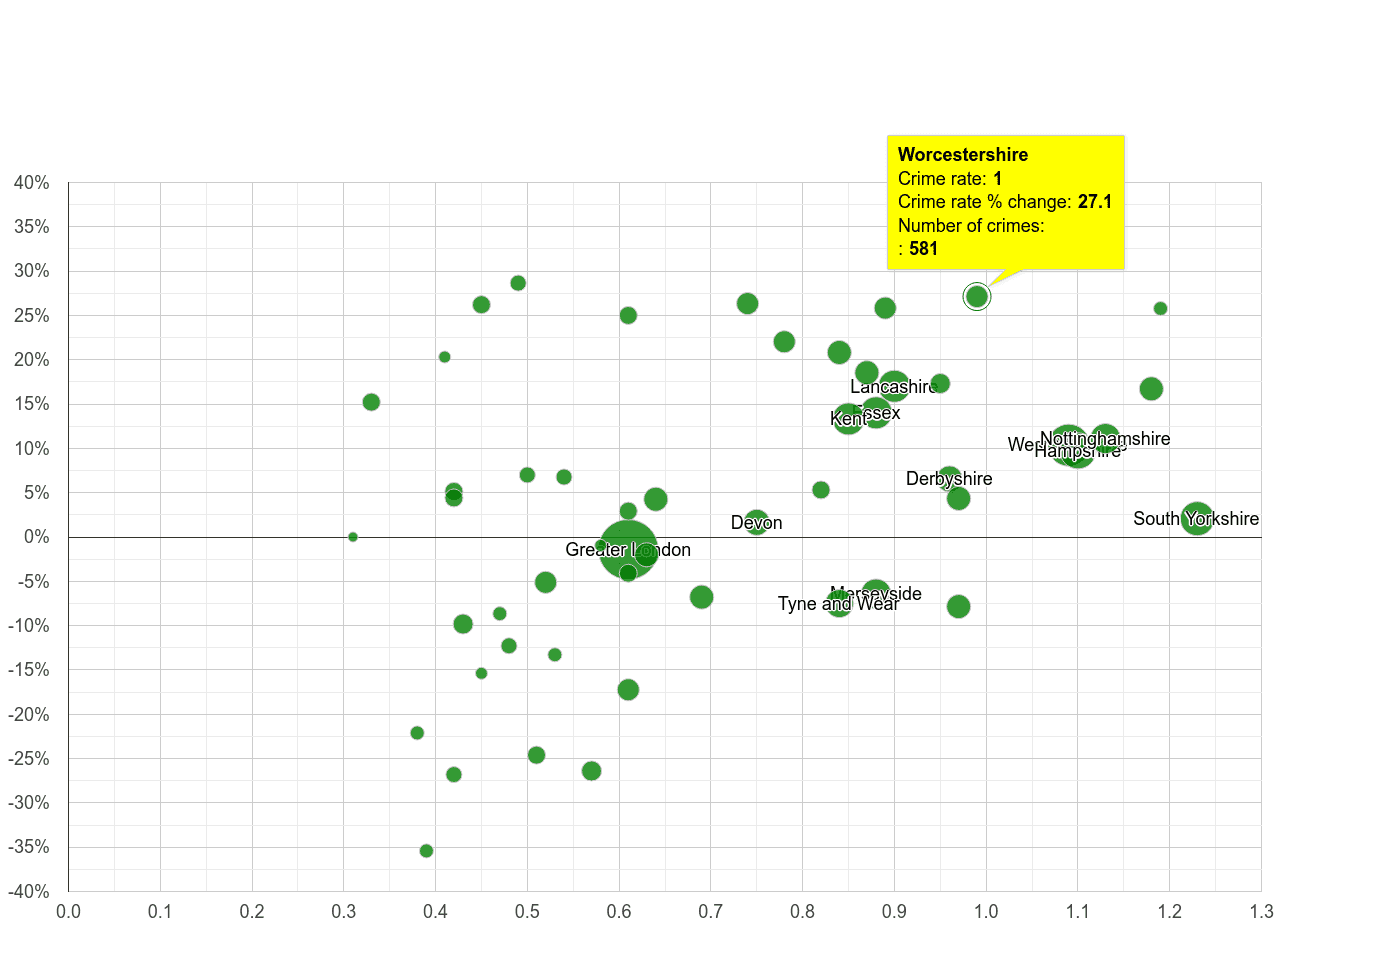 Worcestershire possession of weapons crime rate compared to other counties